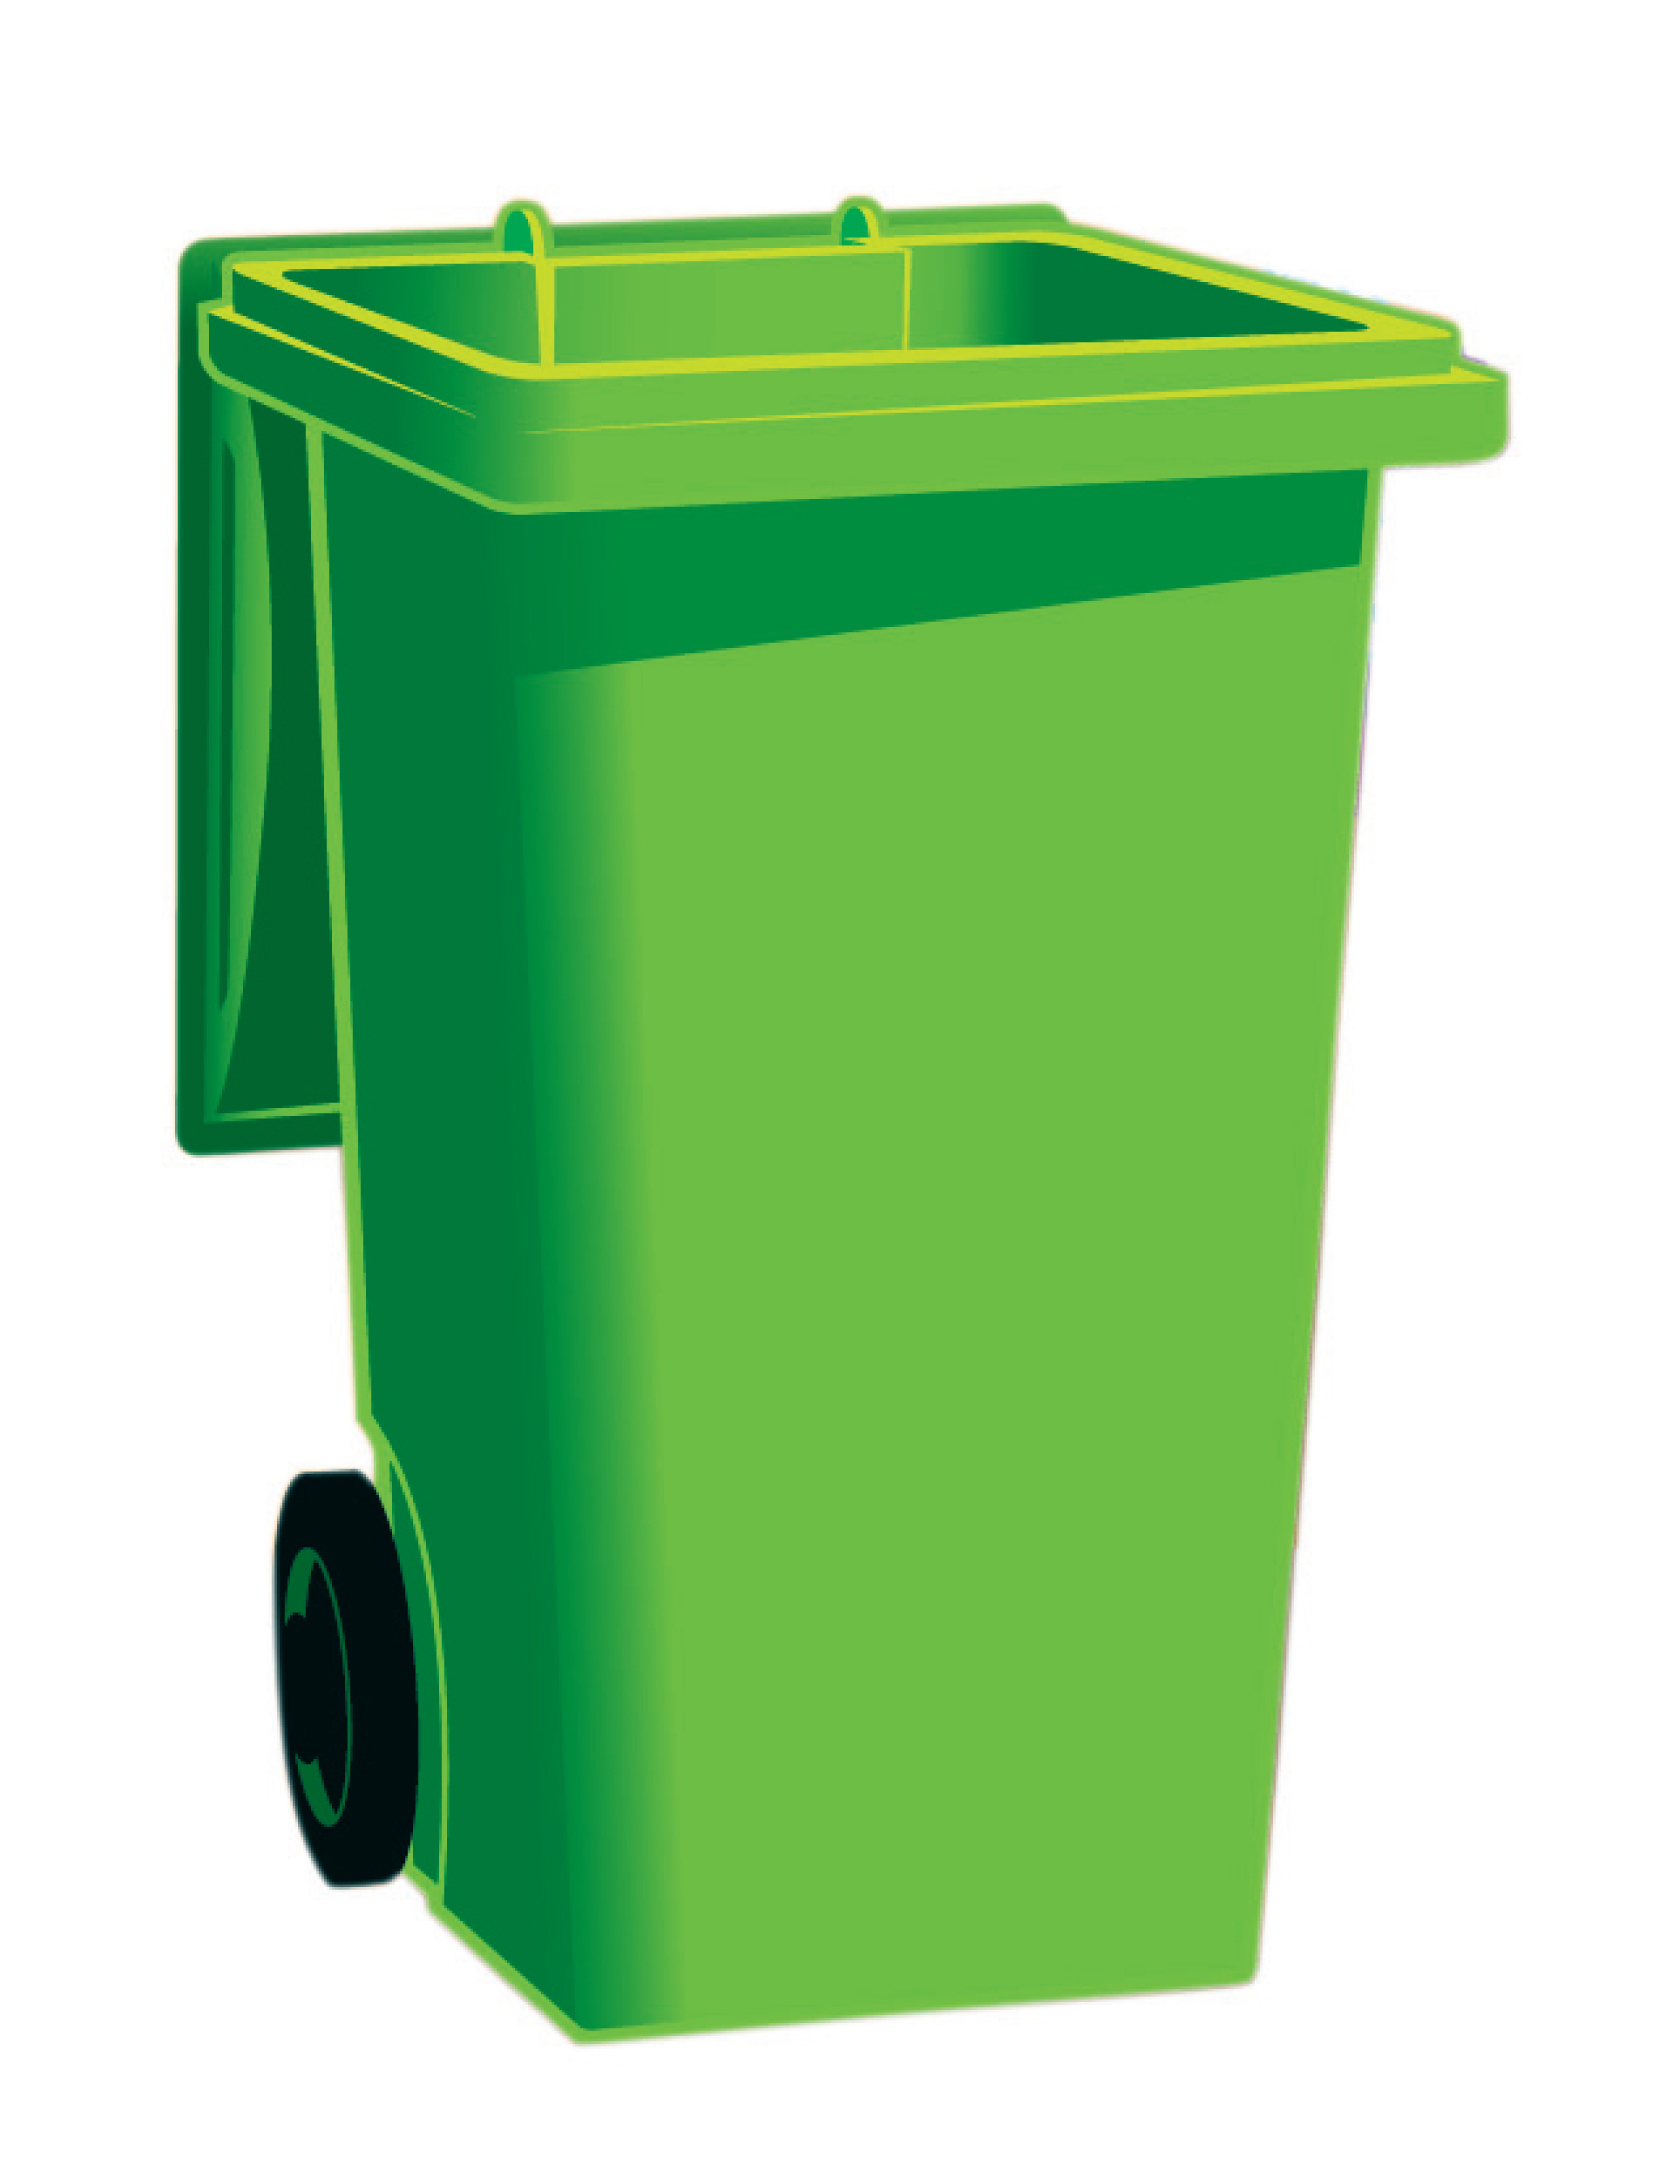 Green garbage can clipart.